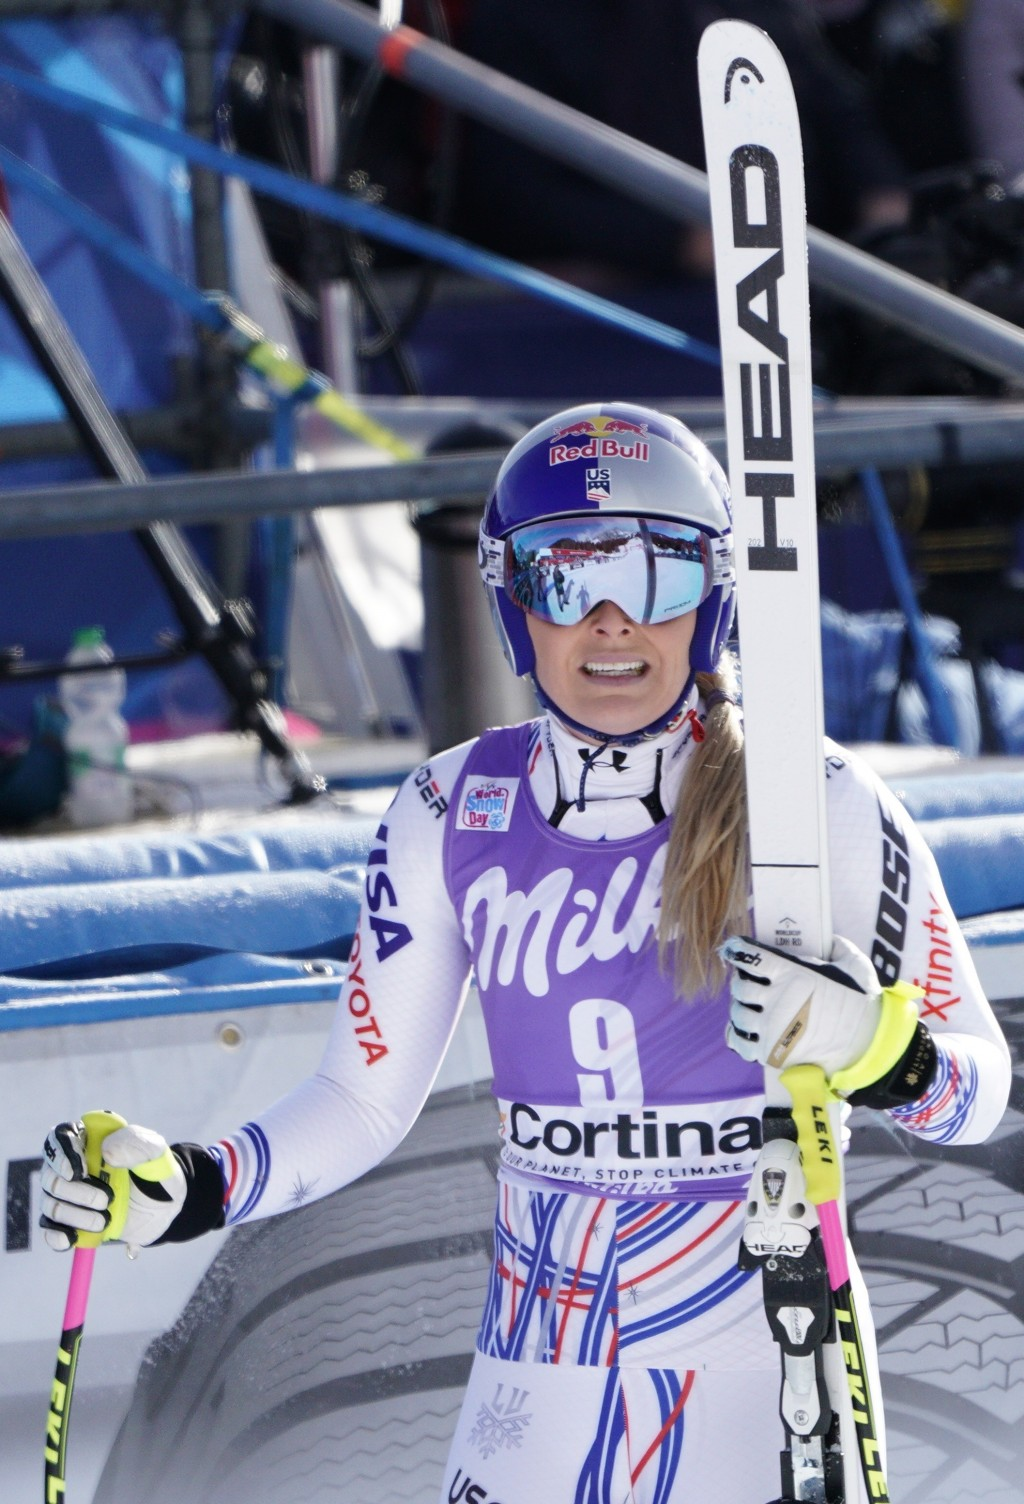 United States' Lindsey Vonn checks her time at the finish area of an alpine ski, women's World Cup downhill in Cortina D'Ampezzo, Italy, Saturday, Jan...